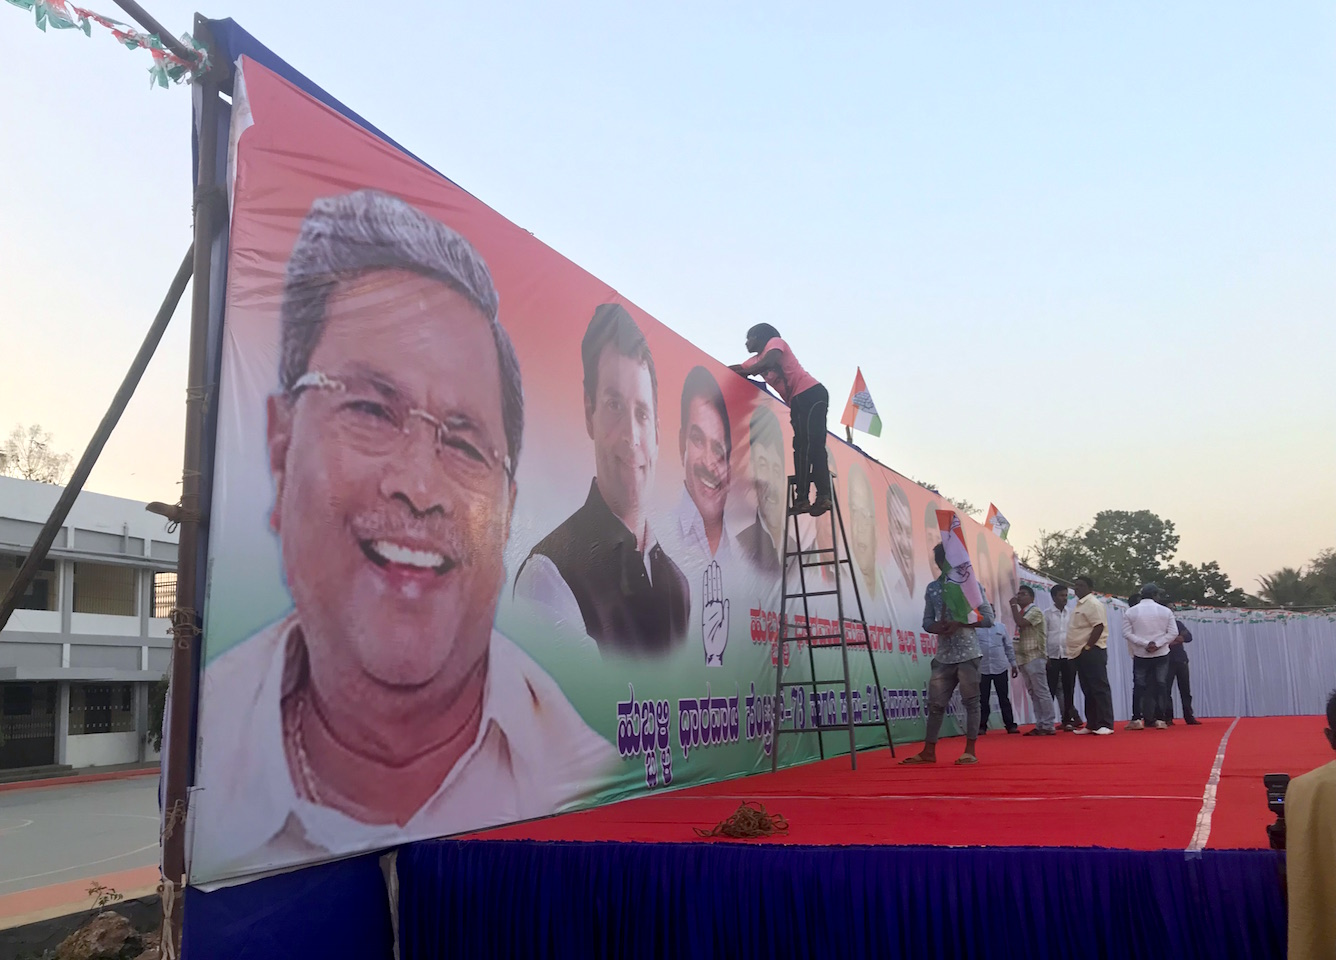 On the Congress party's hoardings, Siddaramaiah gets greater prominence than national president Rahul Gandhi.